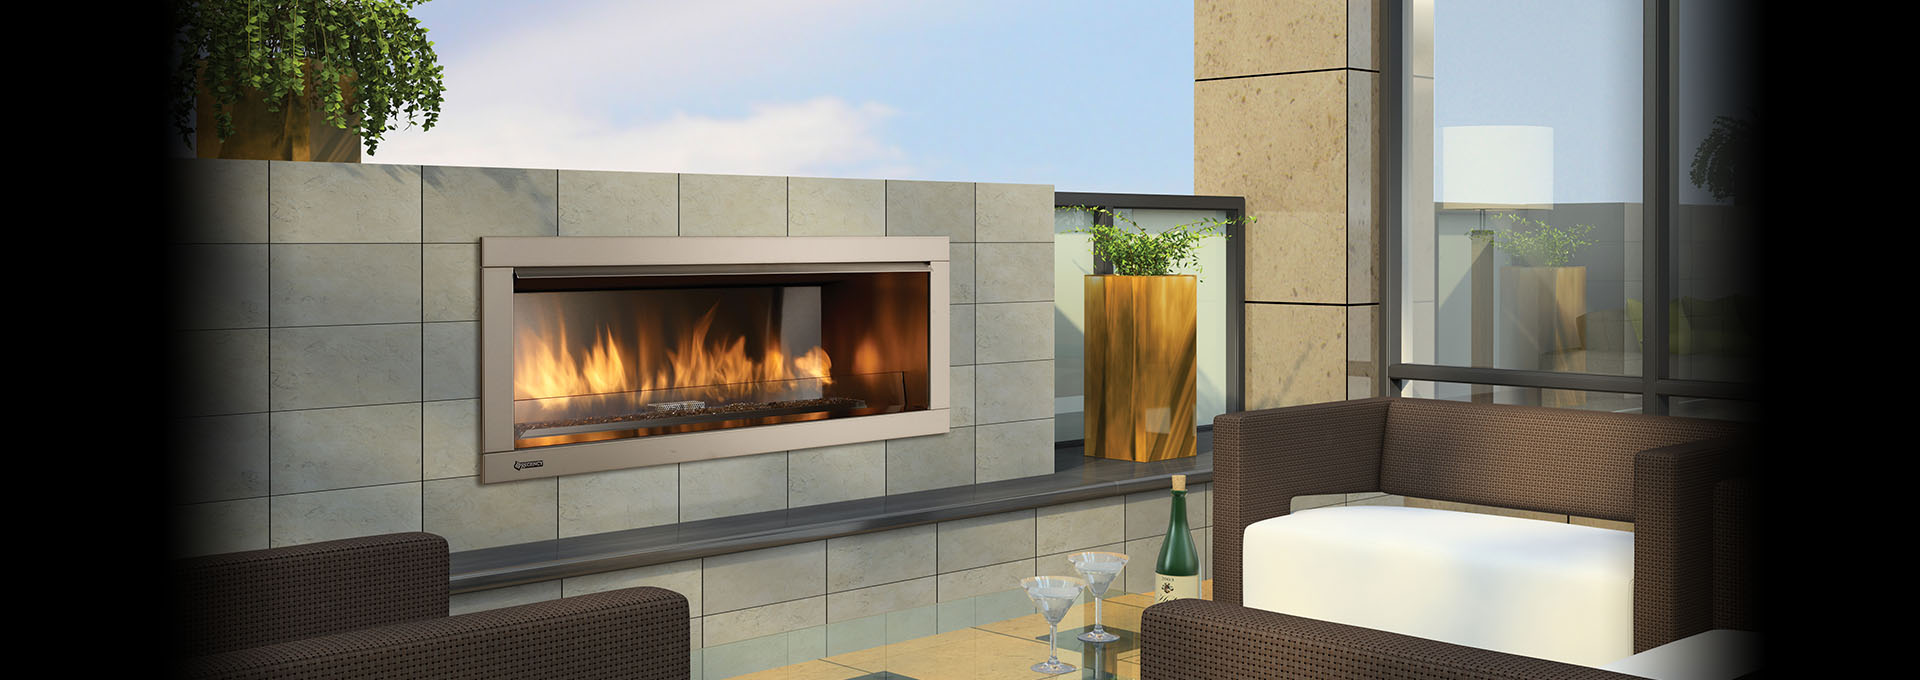 Regency Horizon Hzo42 Outdoor Gas Fireplace Toronto Best